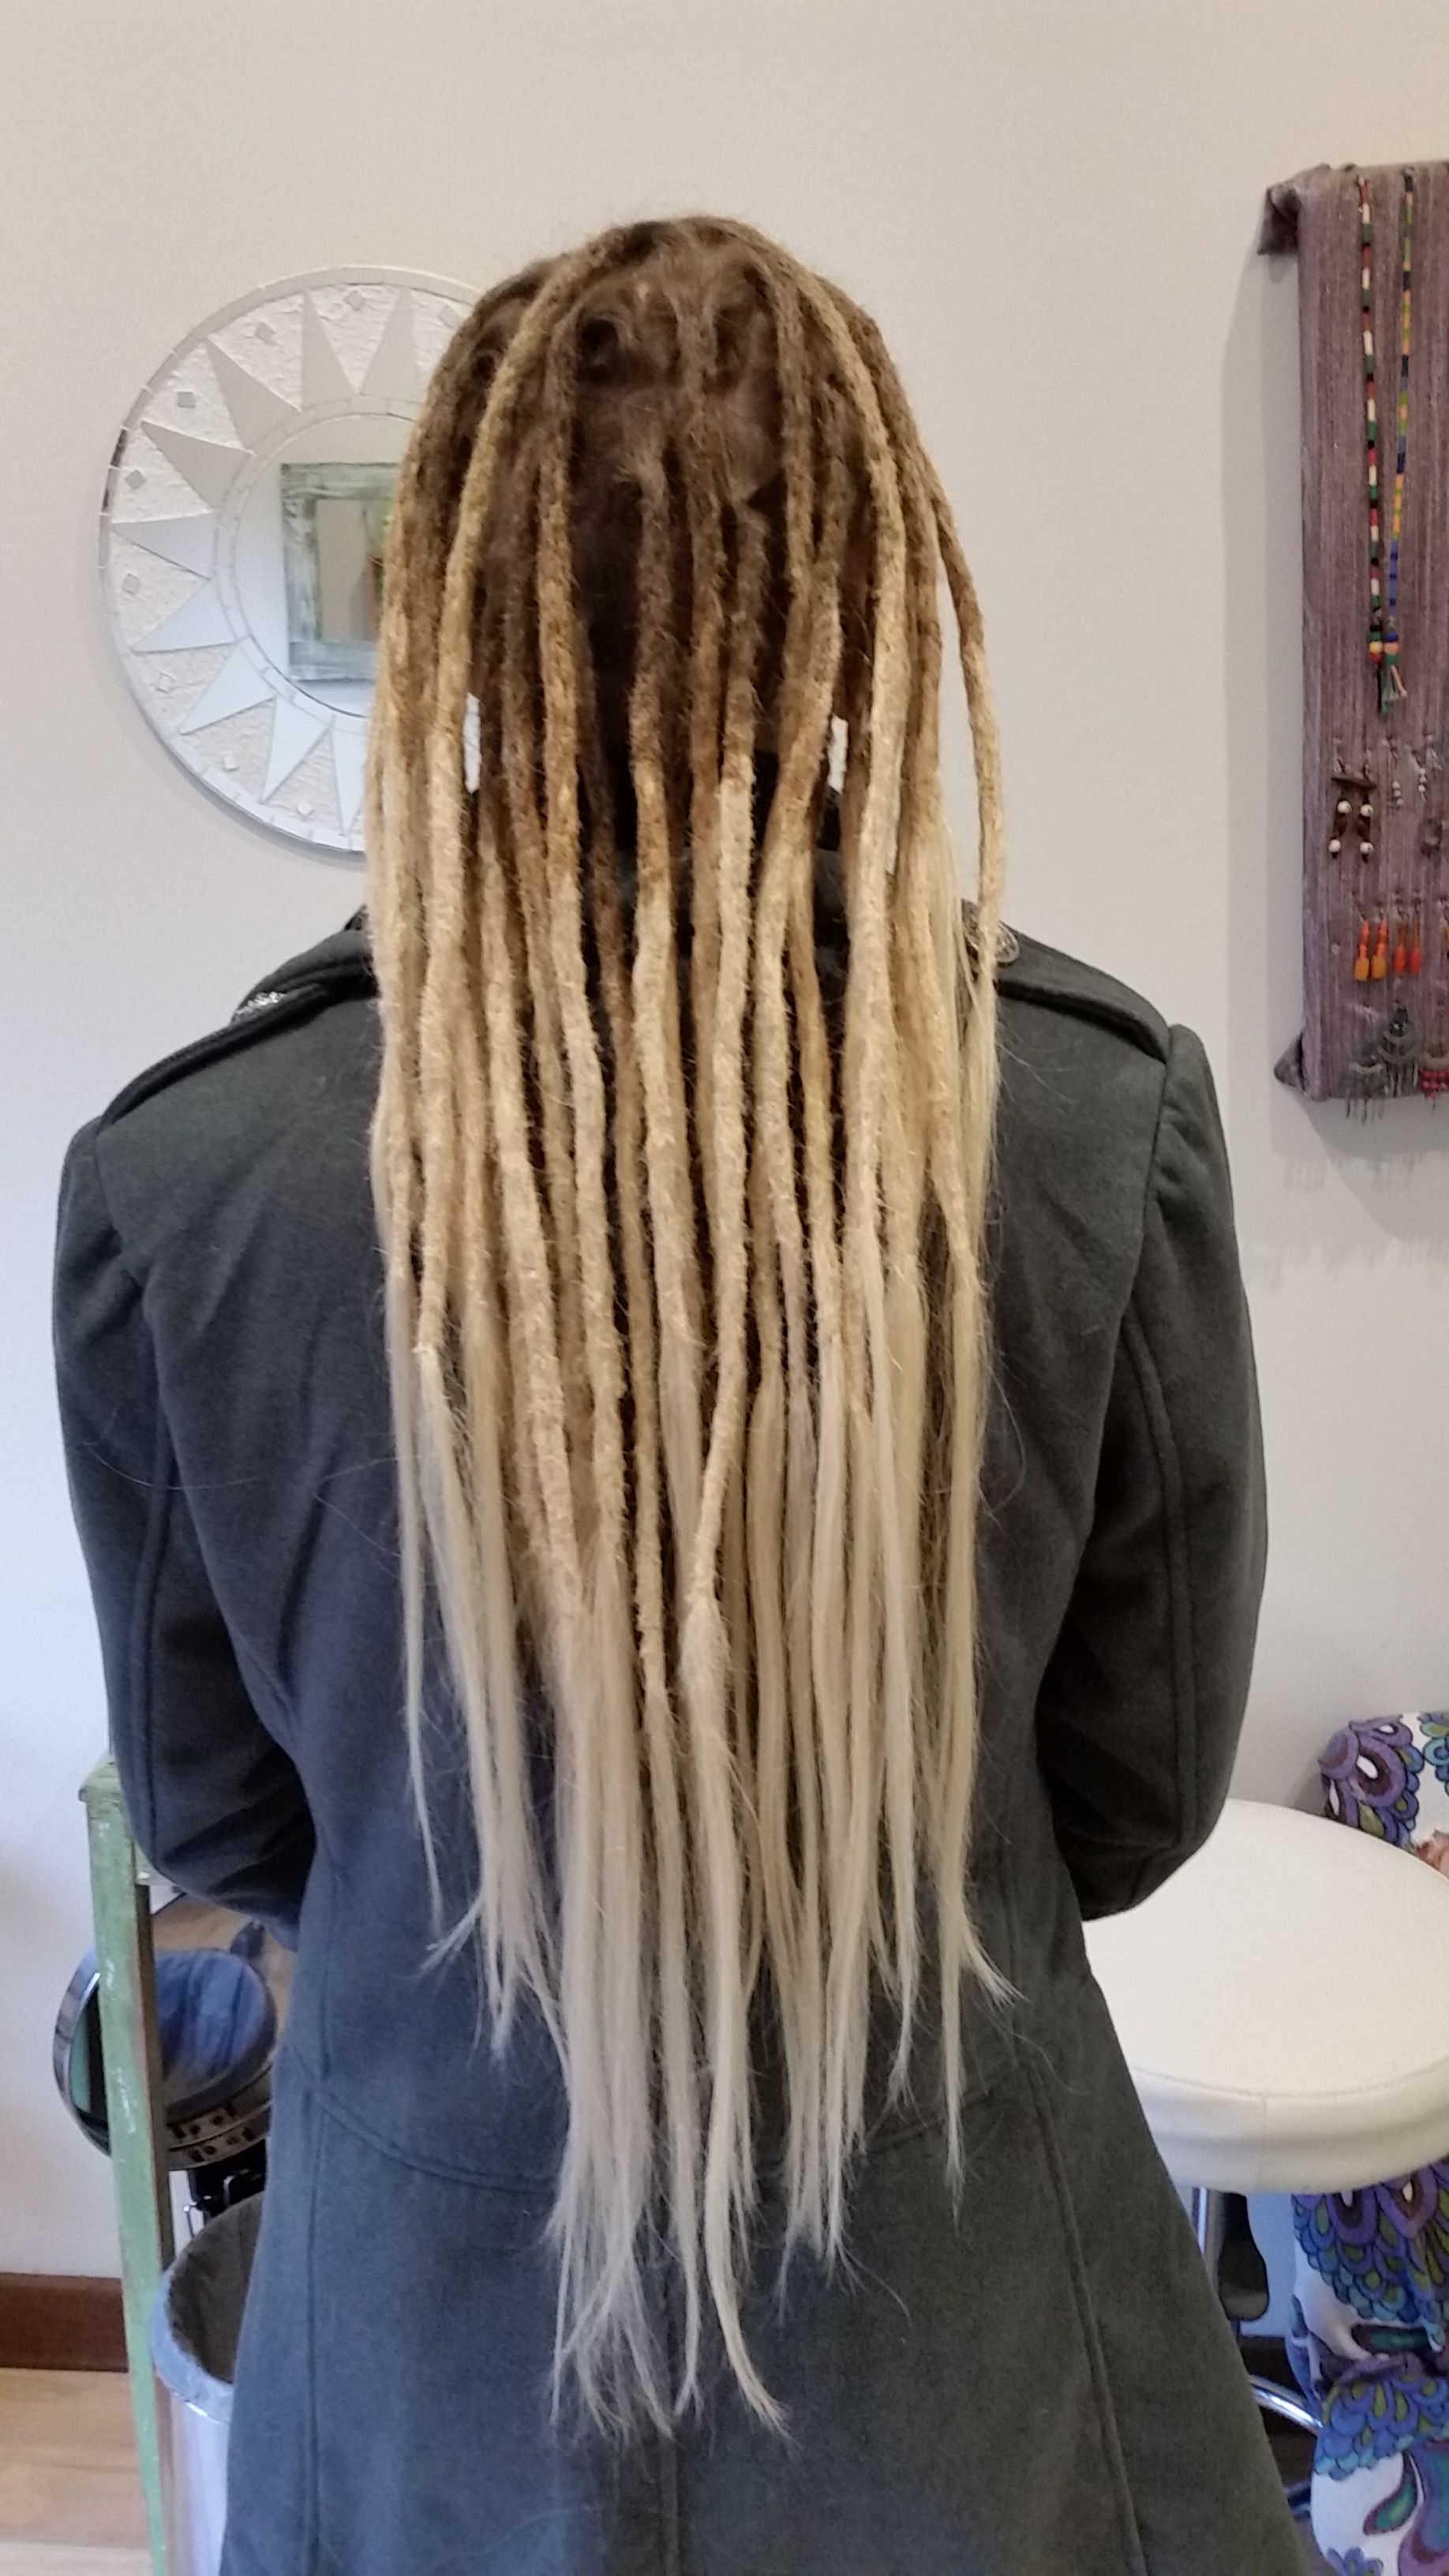 Dreadlock Extensions Create The Most Dramatic Changes For People And Always Involve Challenging Enjoyable How To Make Dreads Dreadlock Extensions Faux Locks